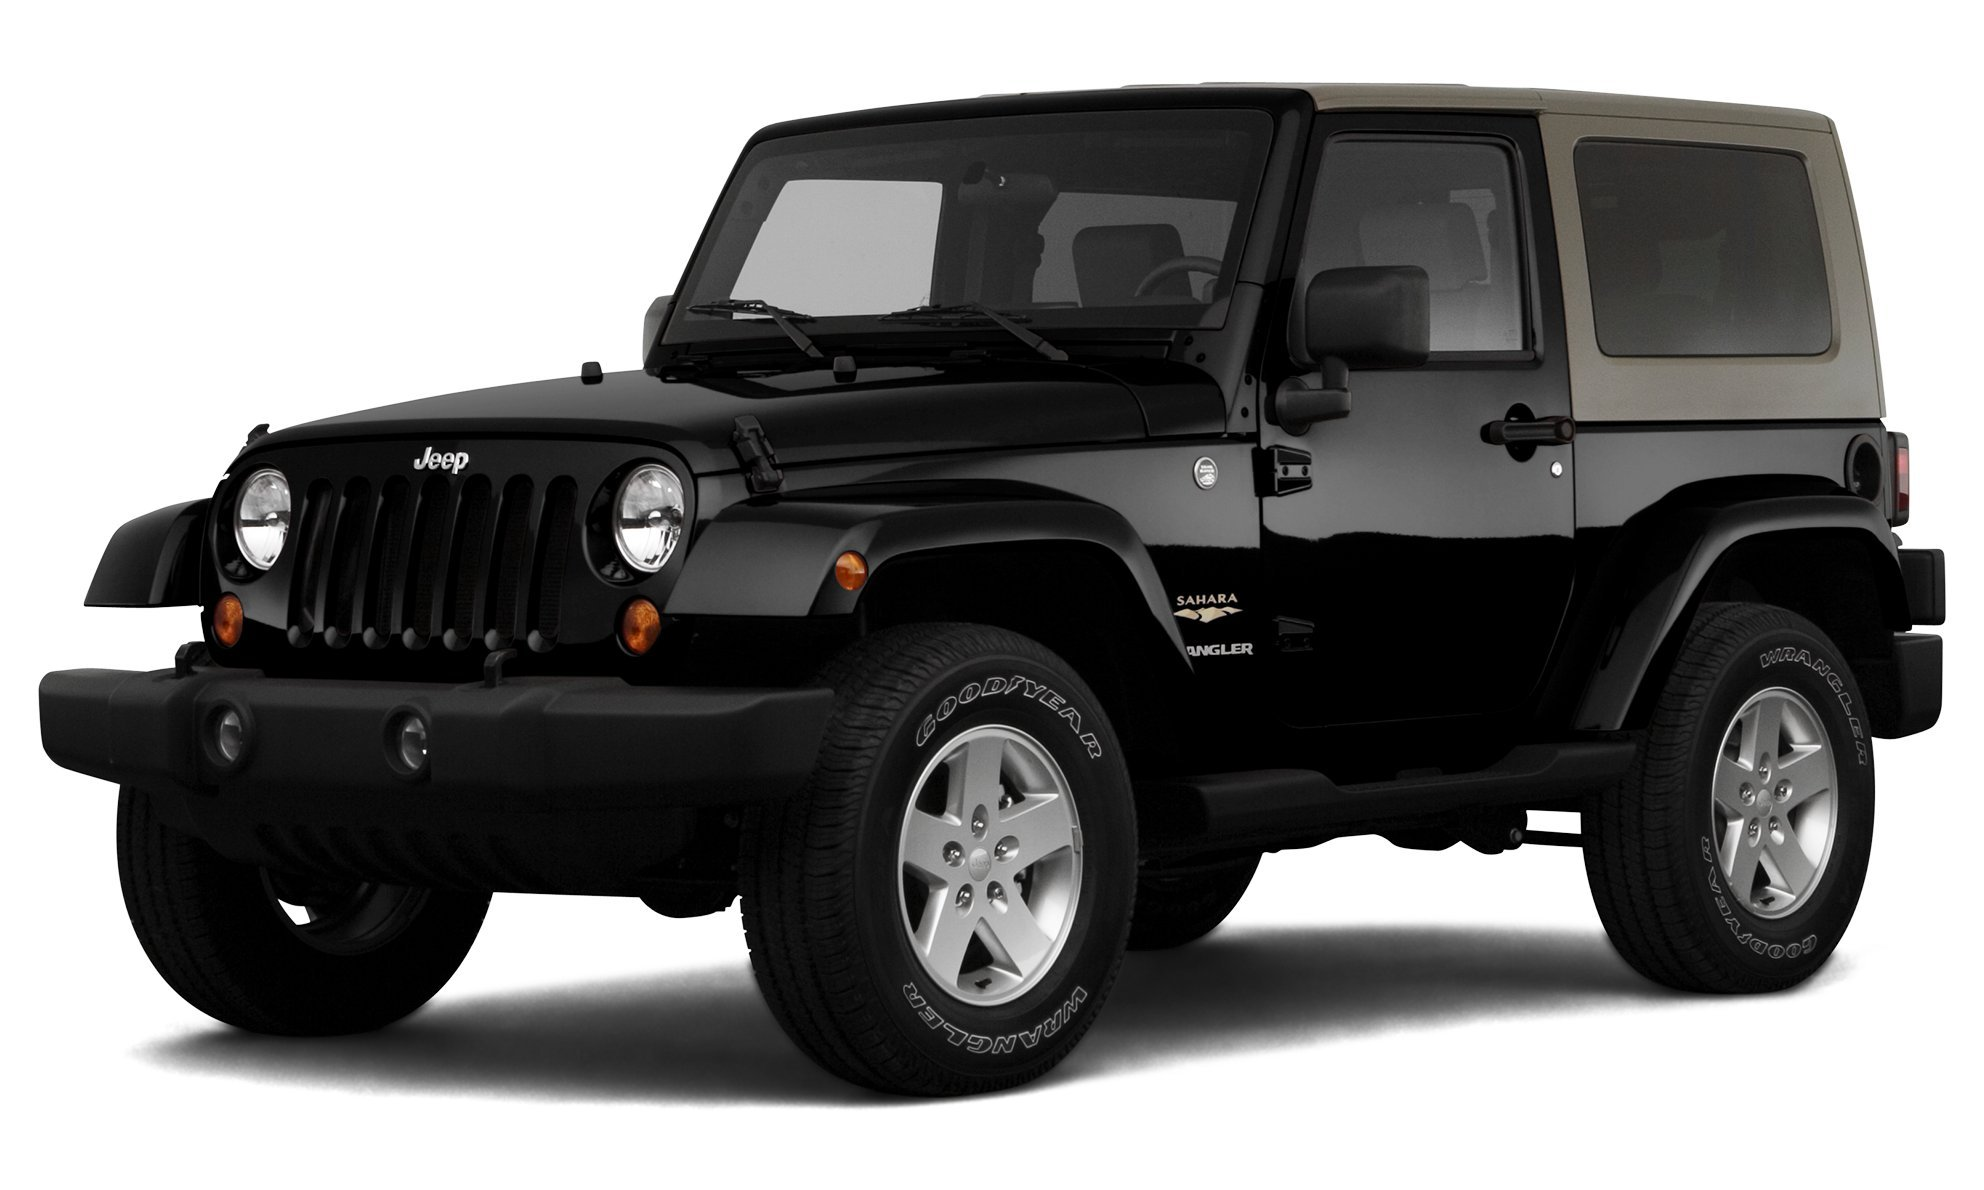 black jeep wrangler 2 door images galleries with a bite. Black Bedroom Furniture Sets. Home Design Ideas